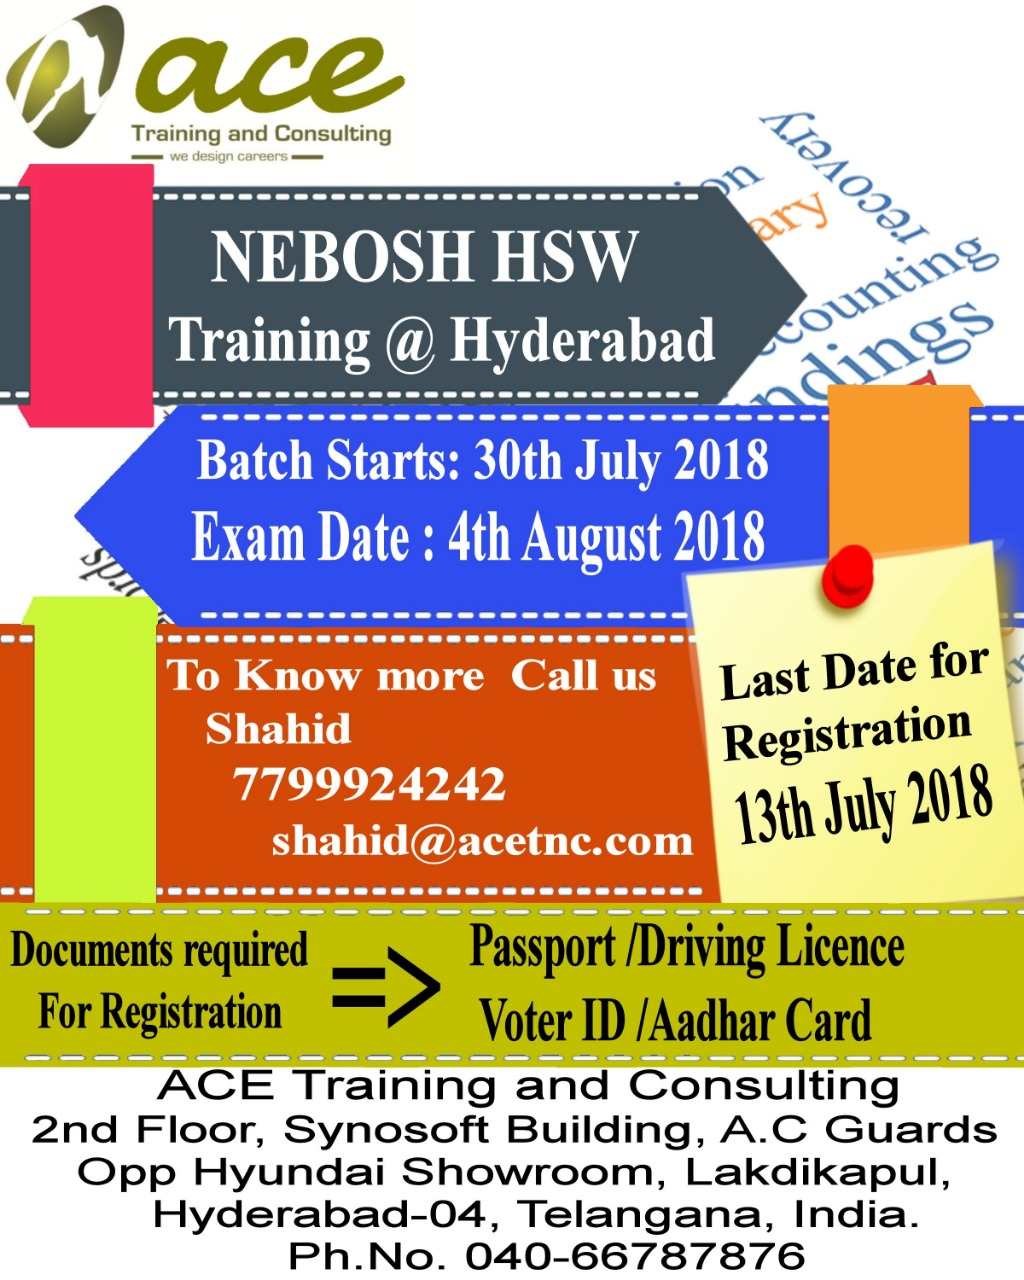 Nebosh HSW Training in hyderabad